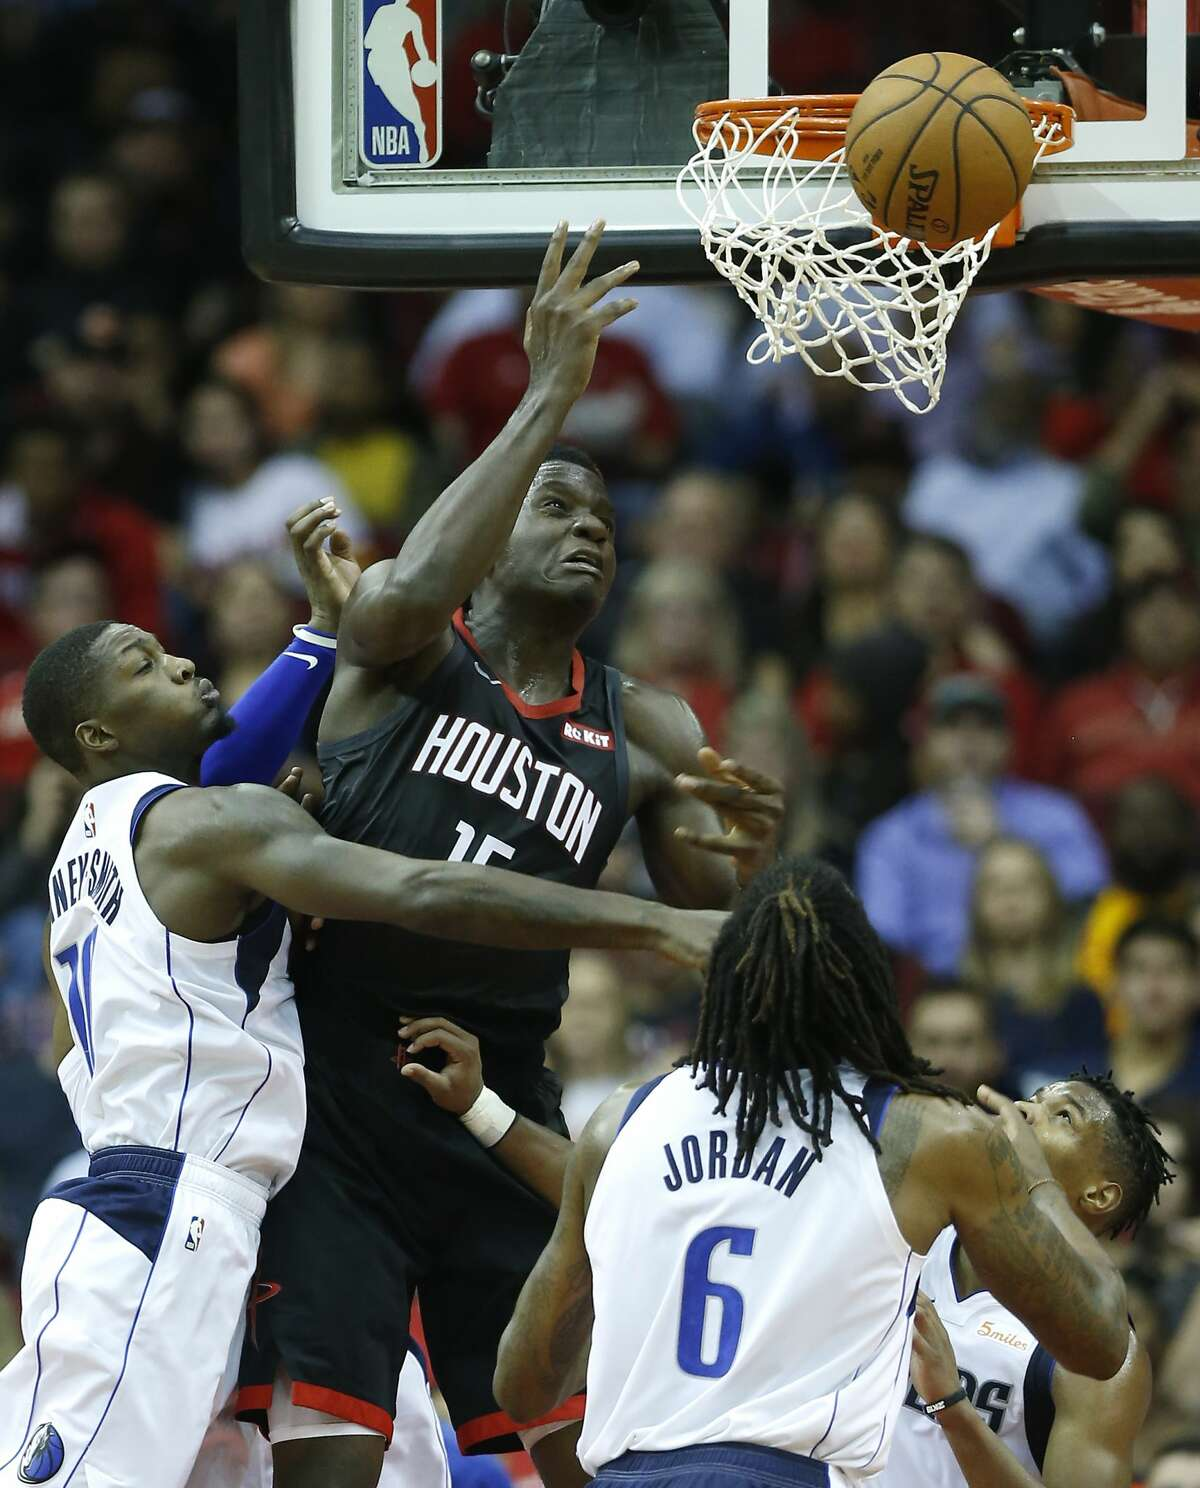 Houston Rockets center Clint Capela (15) misses a shot at the basket as he goes up against Dallas Mavericks forward Dorian Finney-Smith (10) and center DeAndre Jordan (6) during the second half of an NBA basketball game at Toyota Center on Wednesday, Nov. 28, 2018, in Houston.